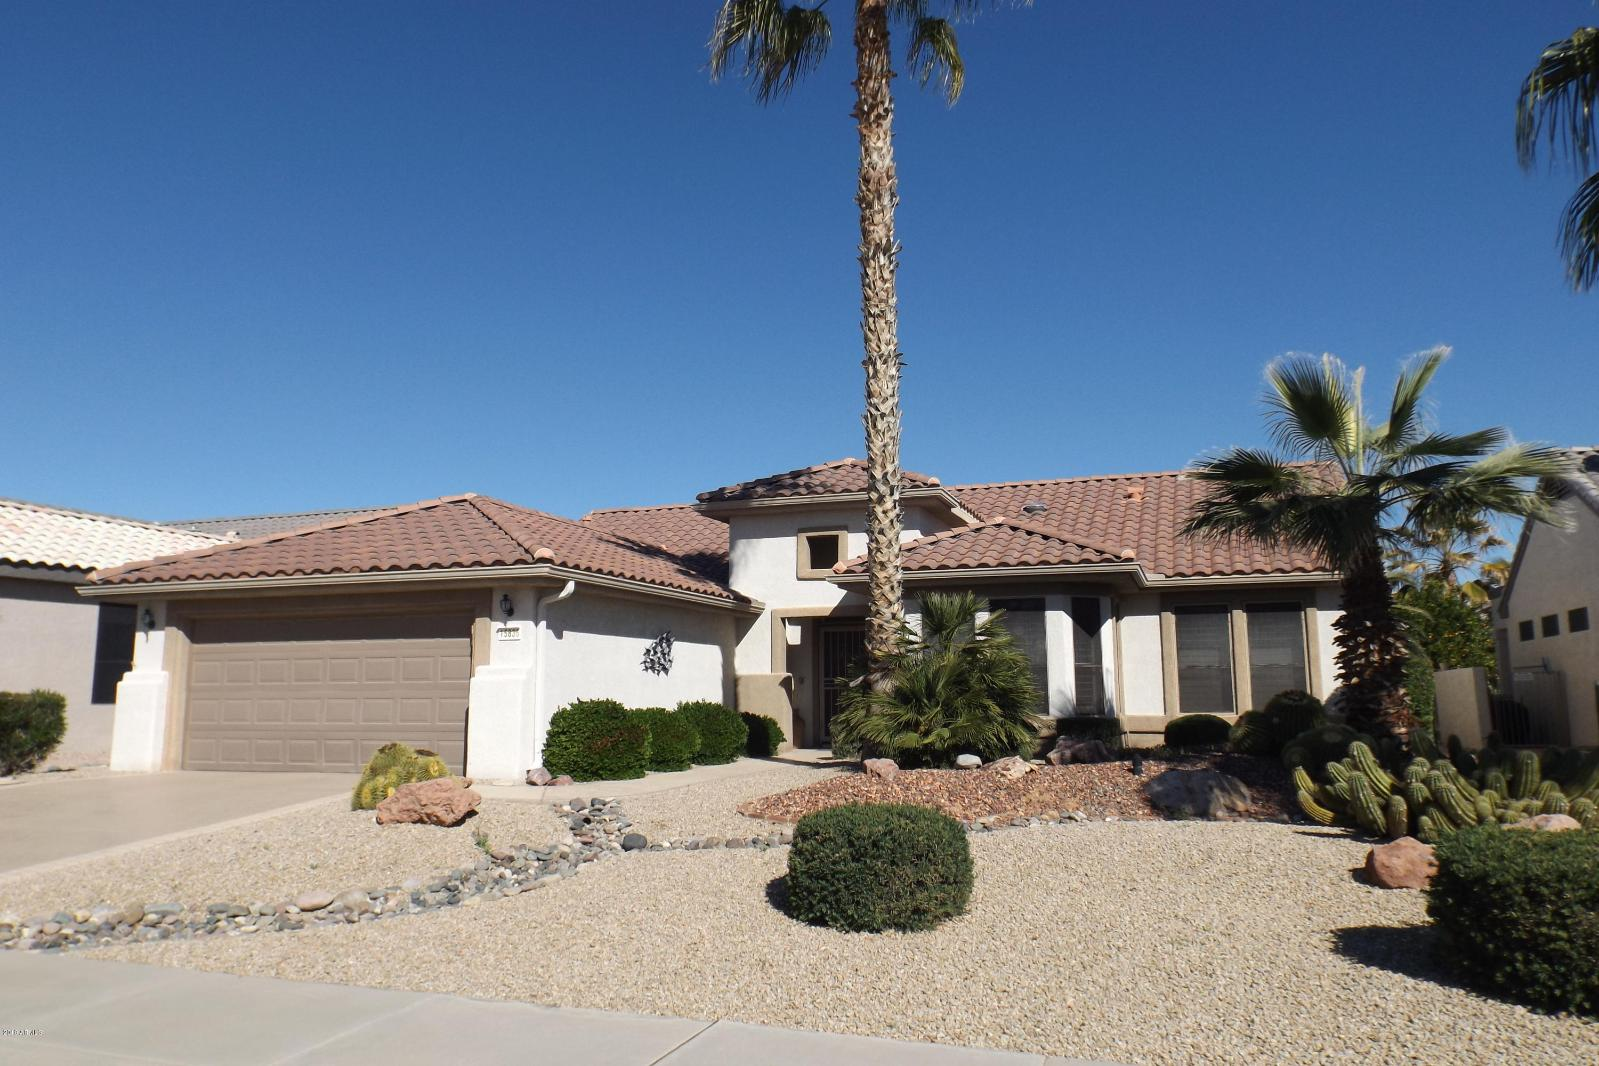 Fabulous 15836 W Star View Lane Surprise Az 85374 Mls 5881647 Home Interior And Landscaping Oversignezvosmurscom